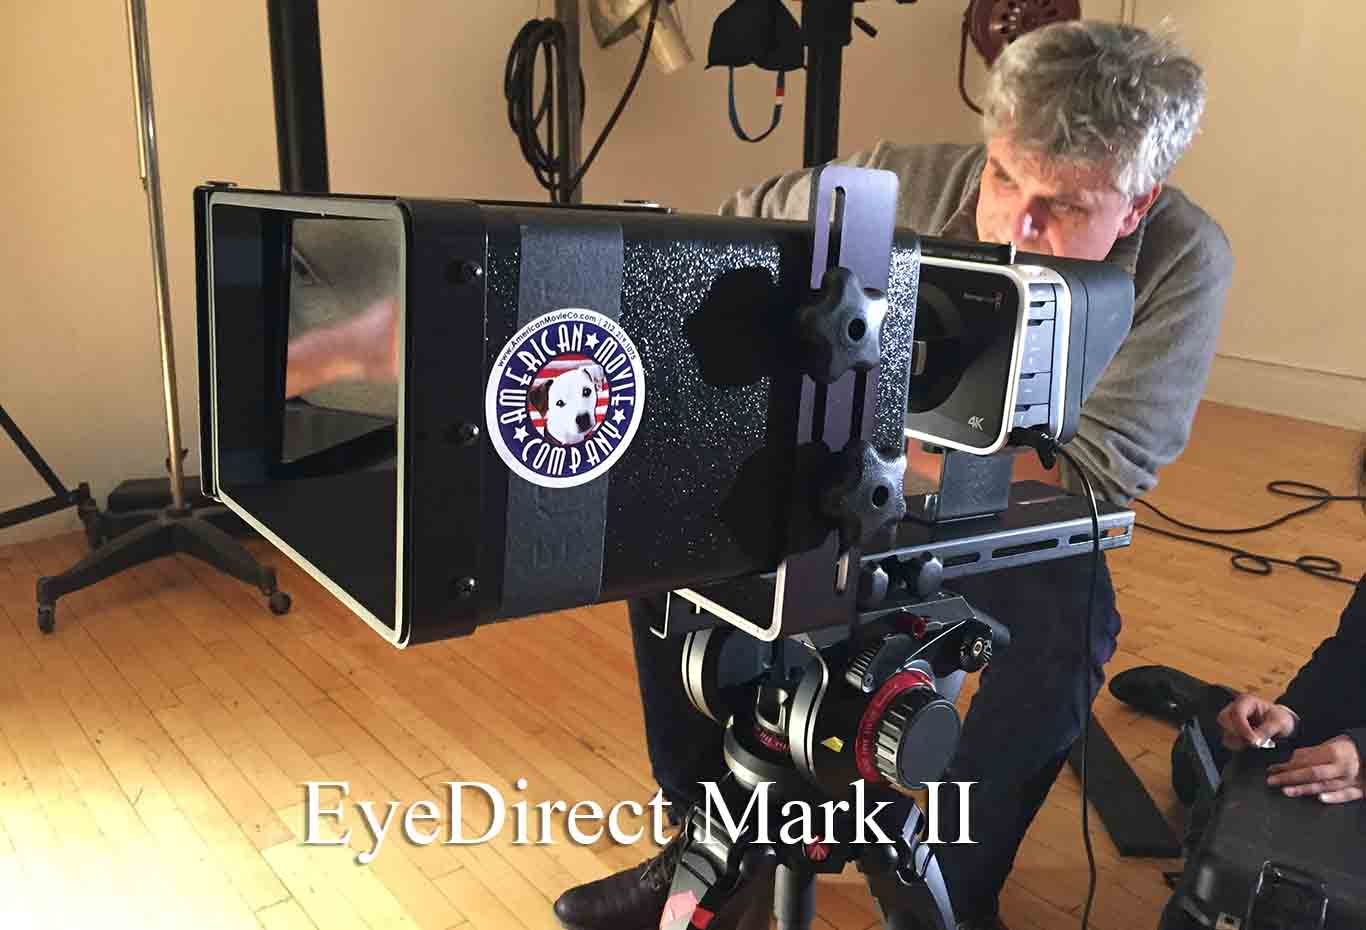 Cameraman with silver hair operating an EyeDirect Mark II with a Blackmagic 4K camera